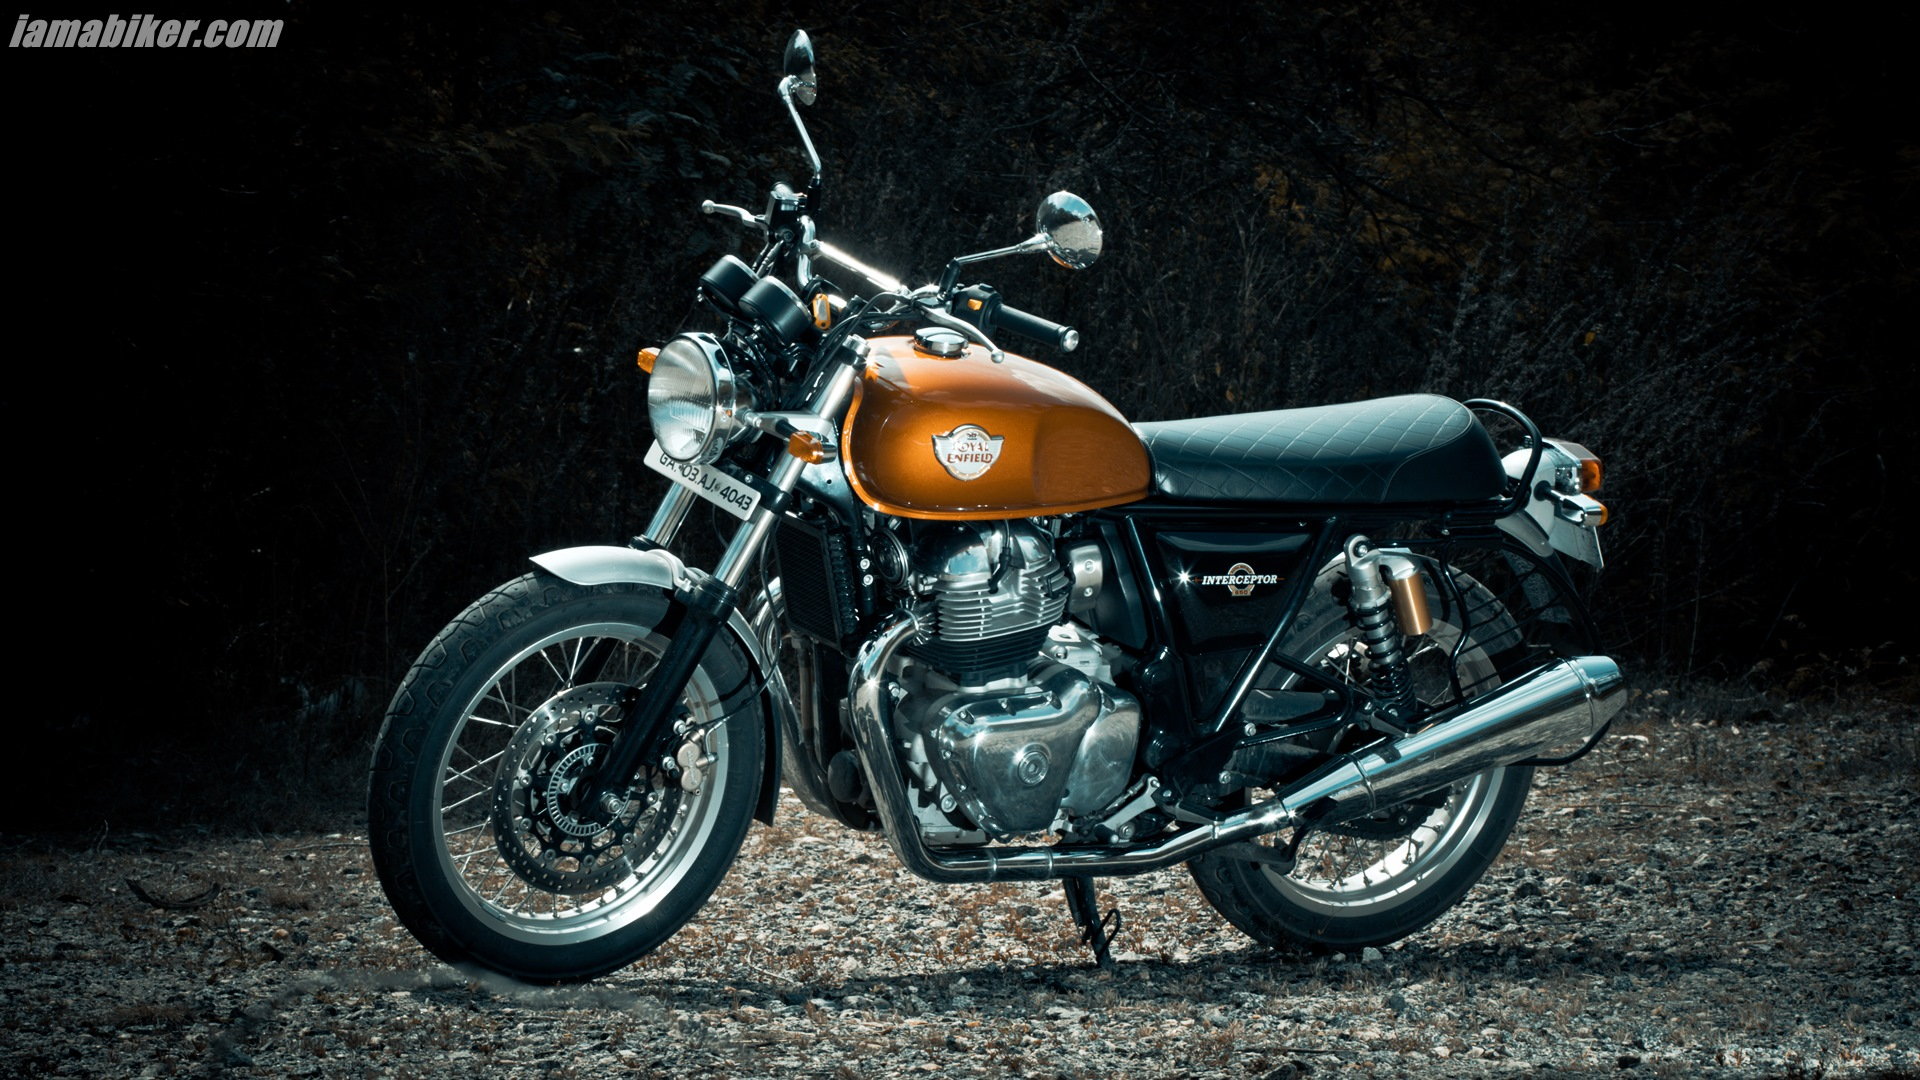 Royal Enfield Interceptor 650 HD wallpapers | IAMABIKER - Everything